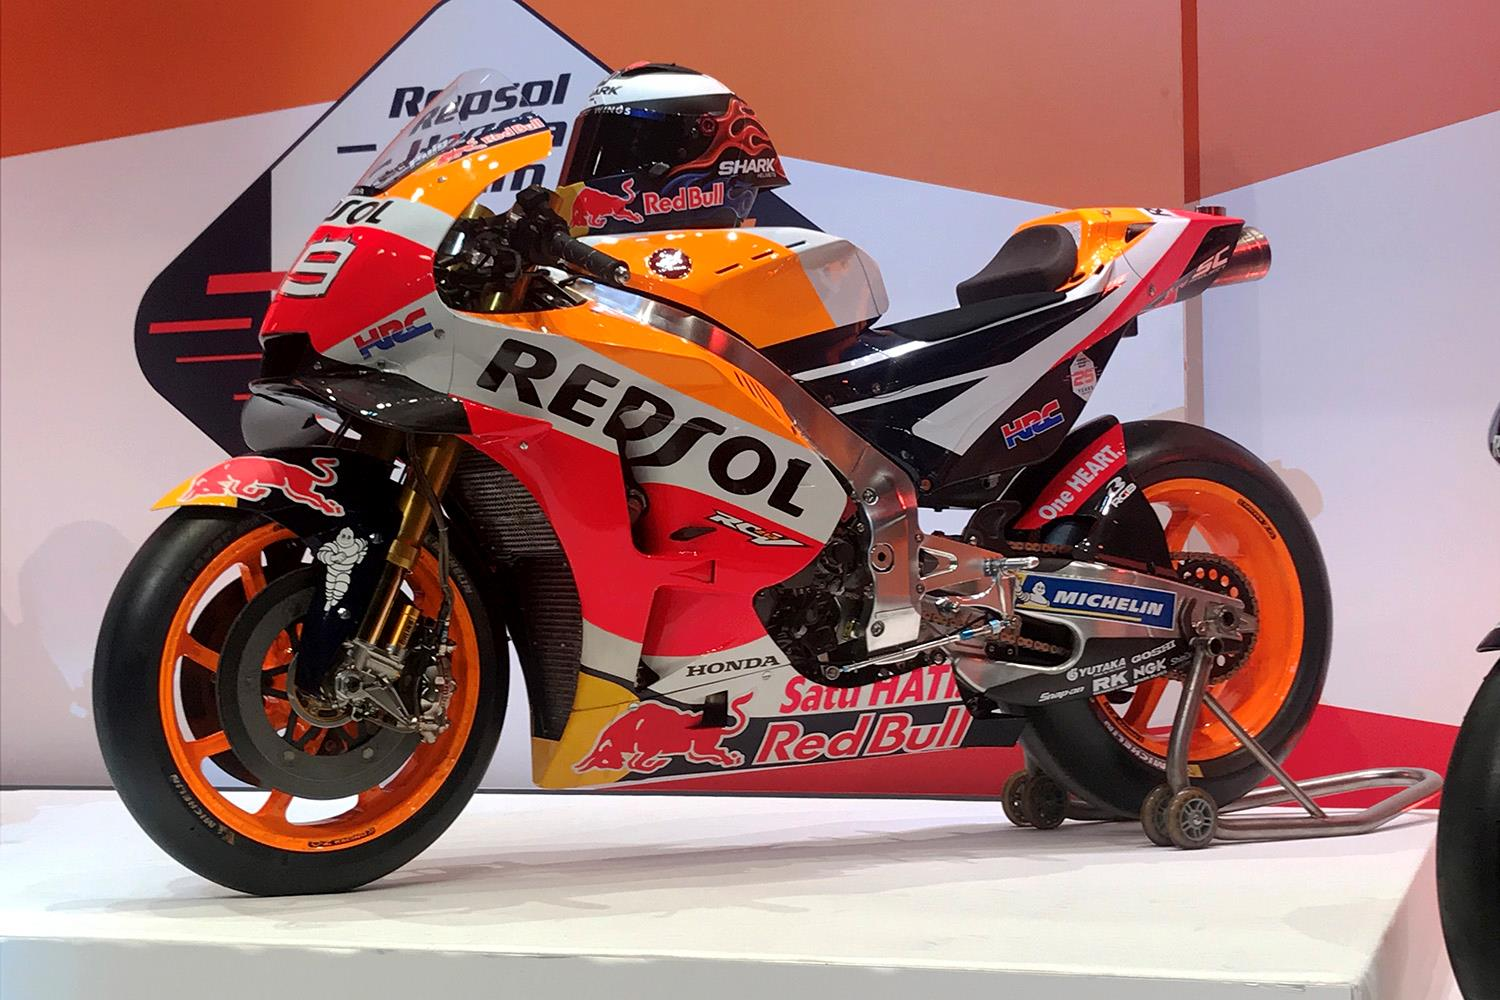 MotoGP: Honda unveil unchanged livery for 2019